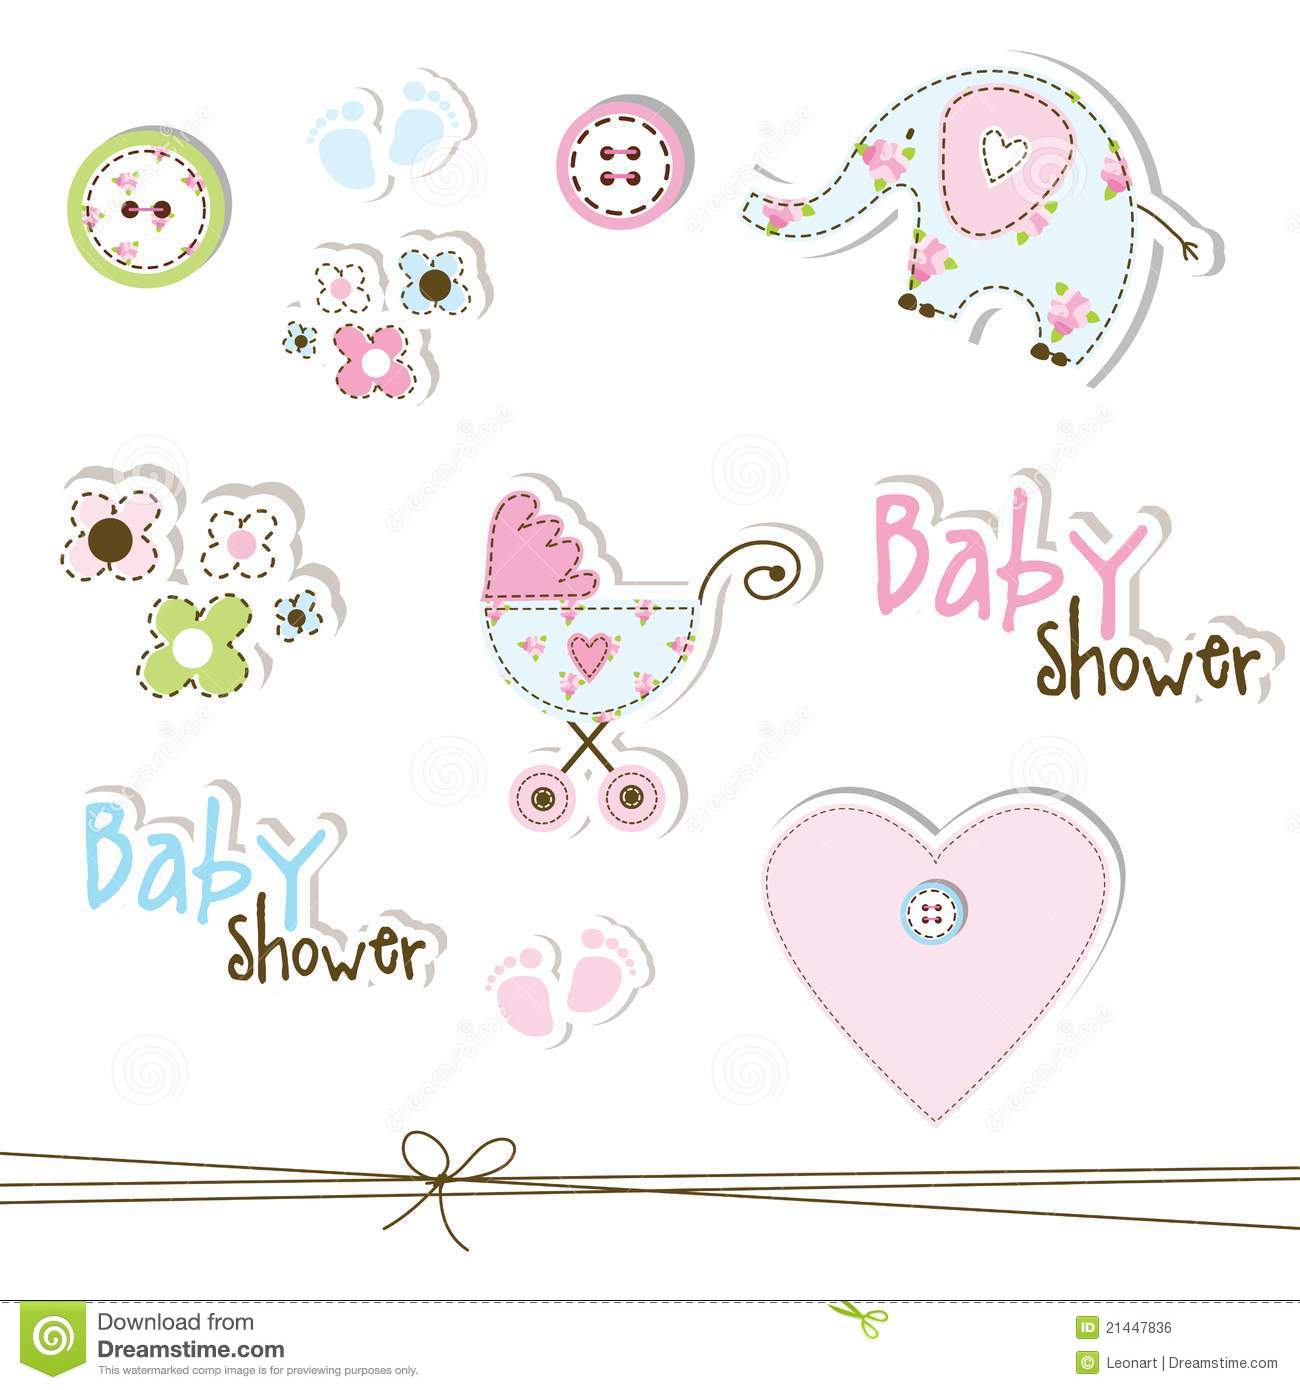 baby shower design elements royalty free stock image image 21447836